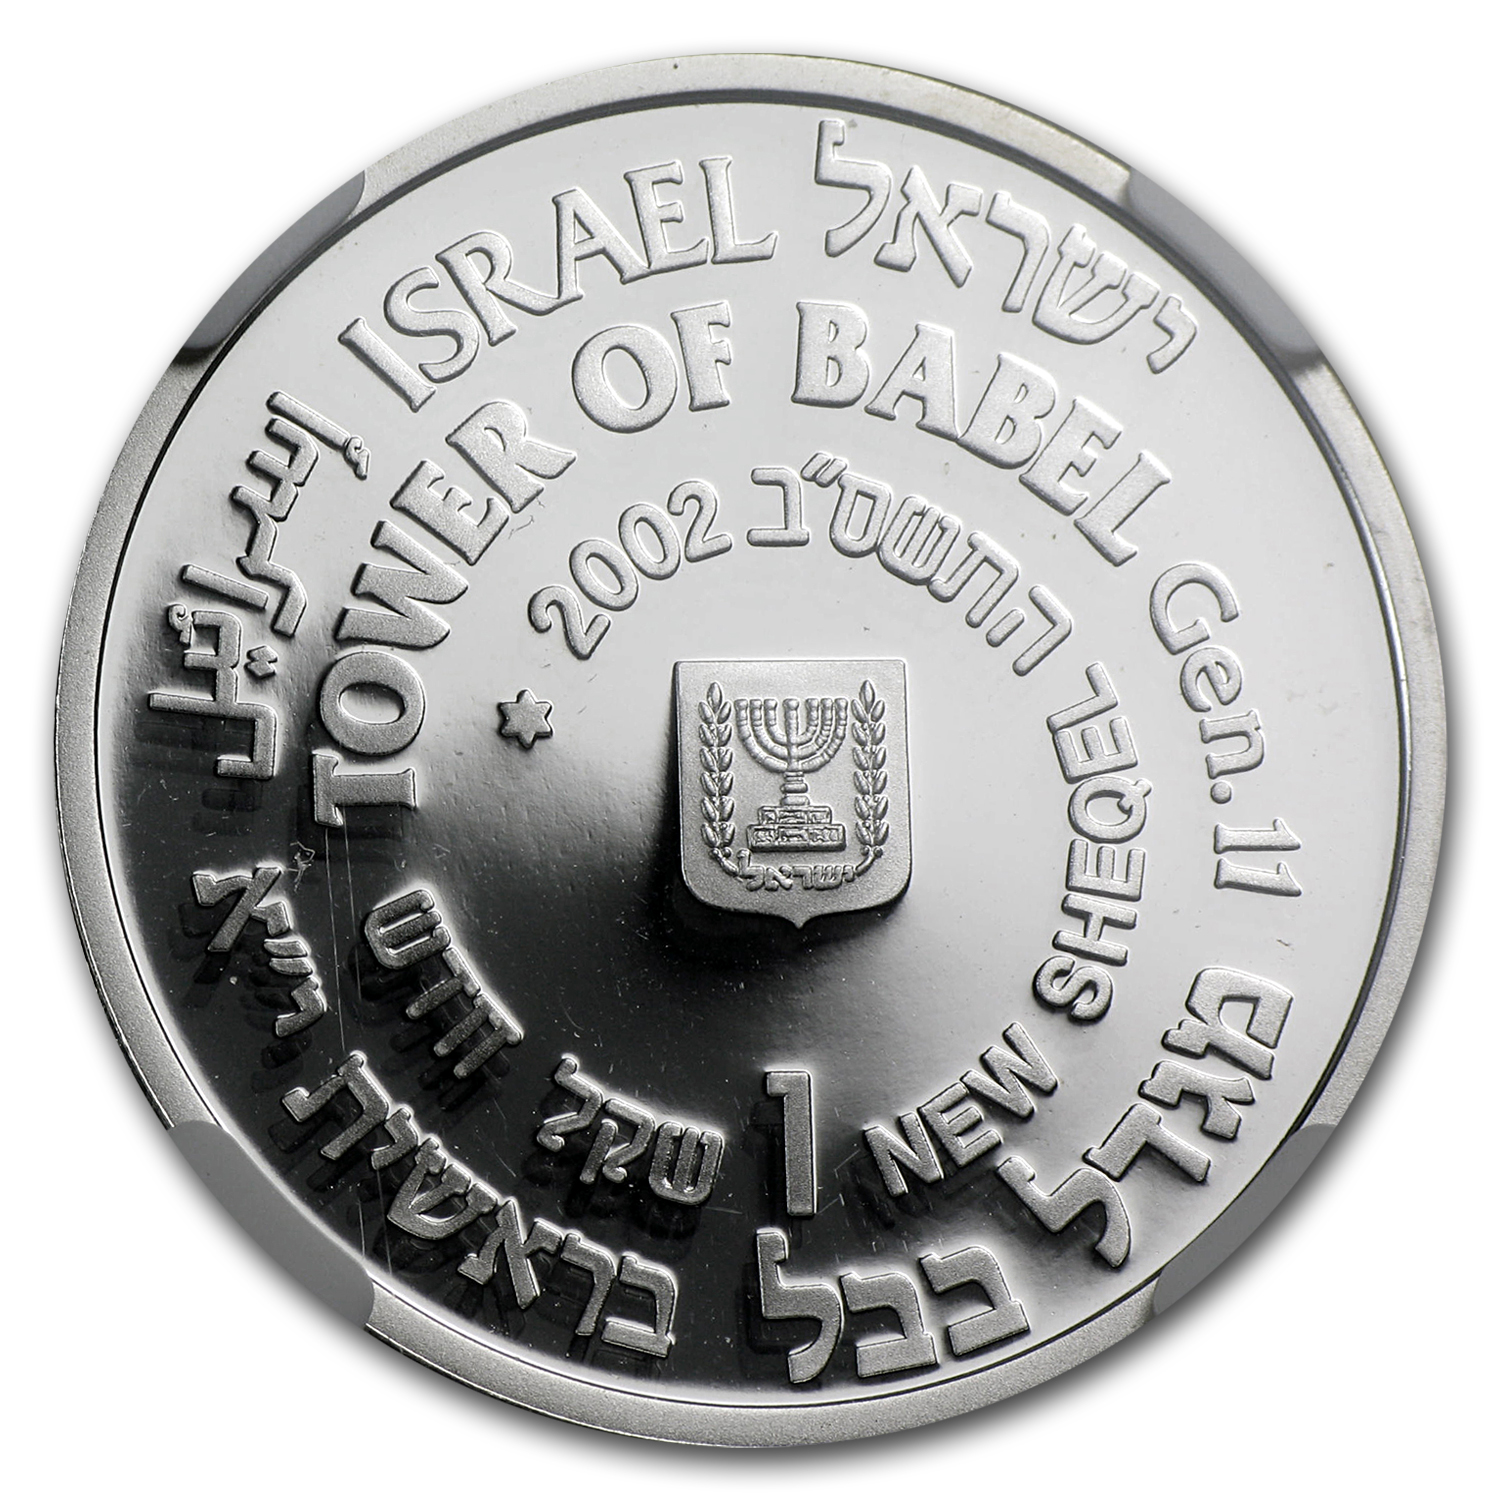 2002 Israel Silver 1 NIS Tower of Babel MS-68 NGC